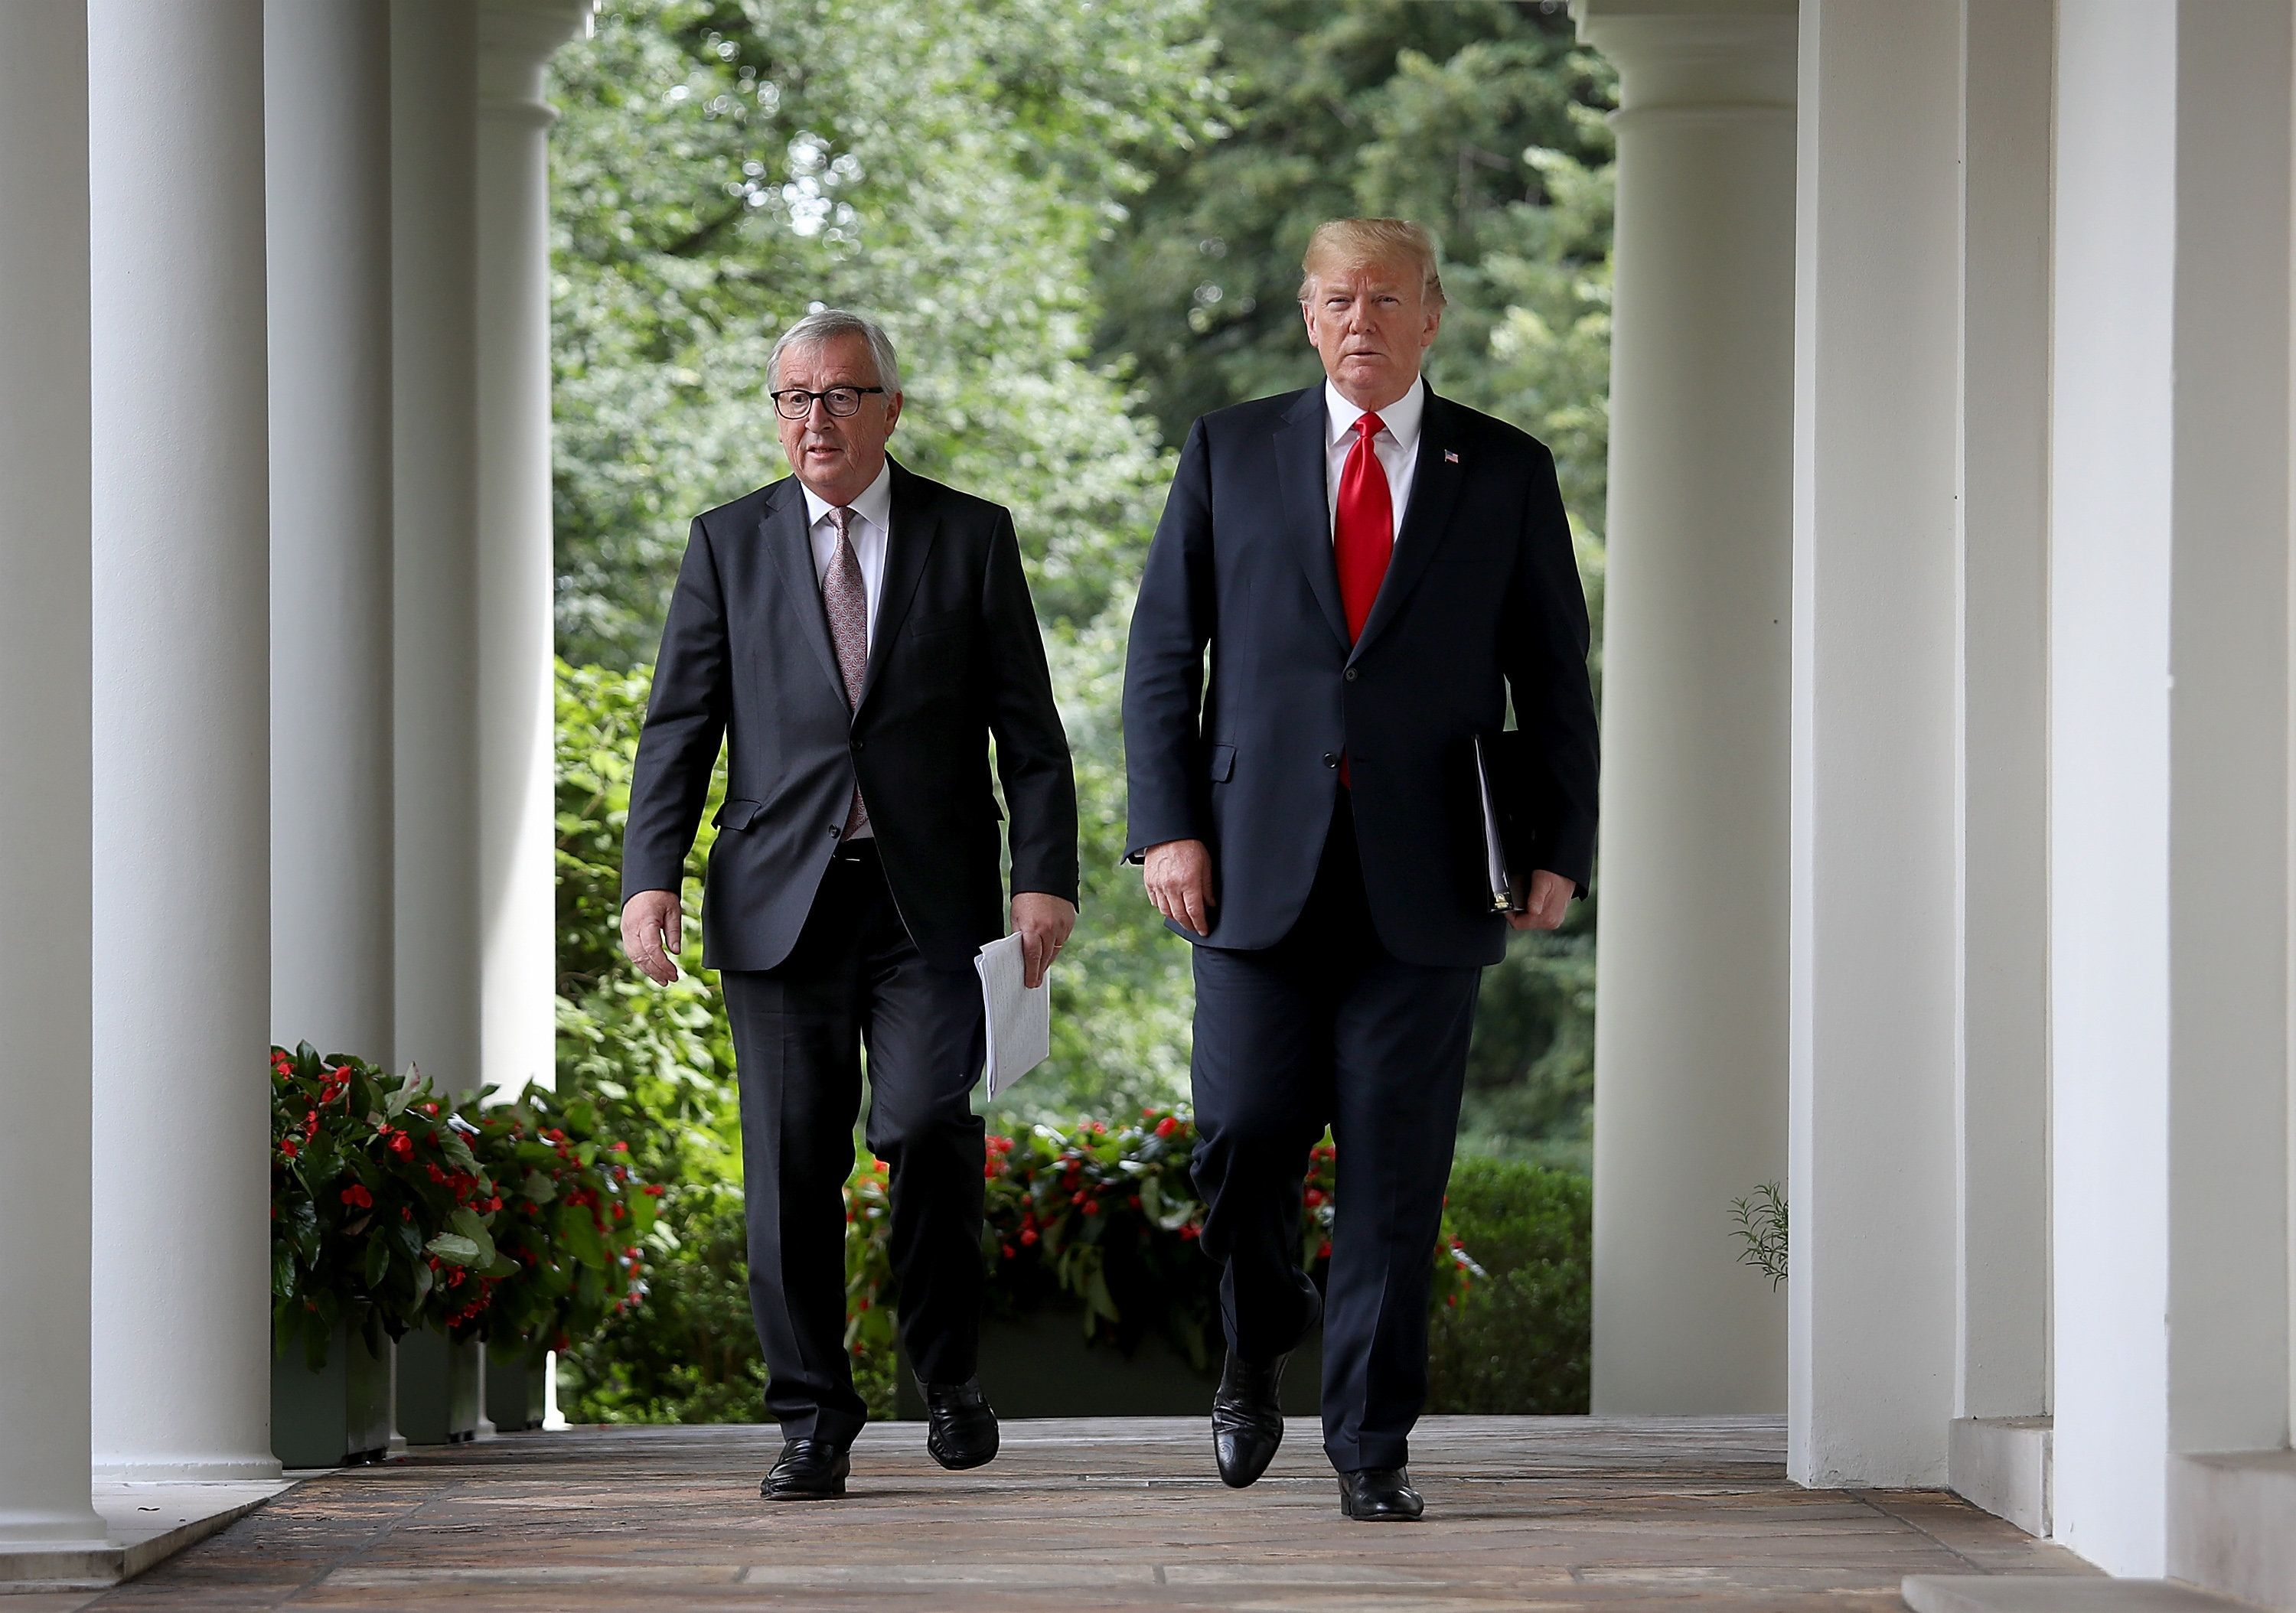 WASHINGTON, DC - JULY 25: U.S. President Donald Trump and European Commission President Jean-Claude Juncker walk to the Rose Garden of the White House to deliver a joint statement on trade July 25, 2018 in Washington, DC. Trump and Juncker announced the beginning of negotiations to eliminate trade tensions between the European Union and the United States.  (Photo by Win McNamee/Getty Images)